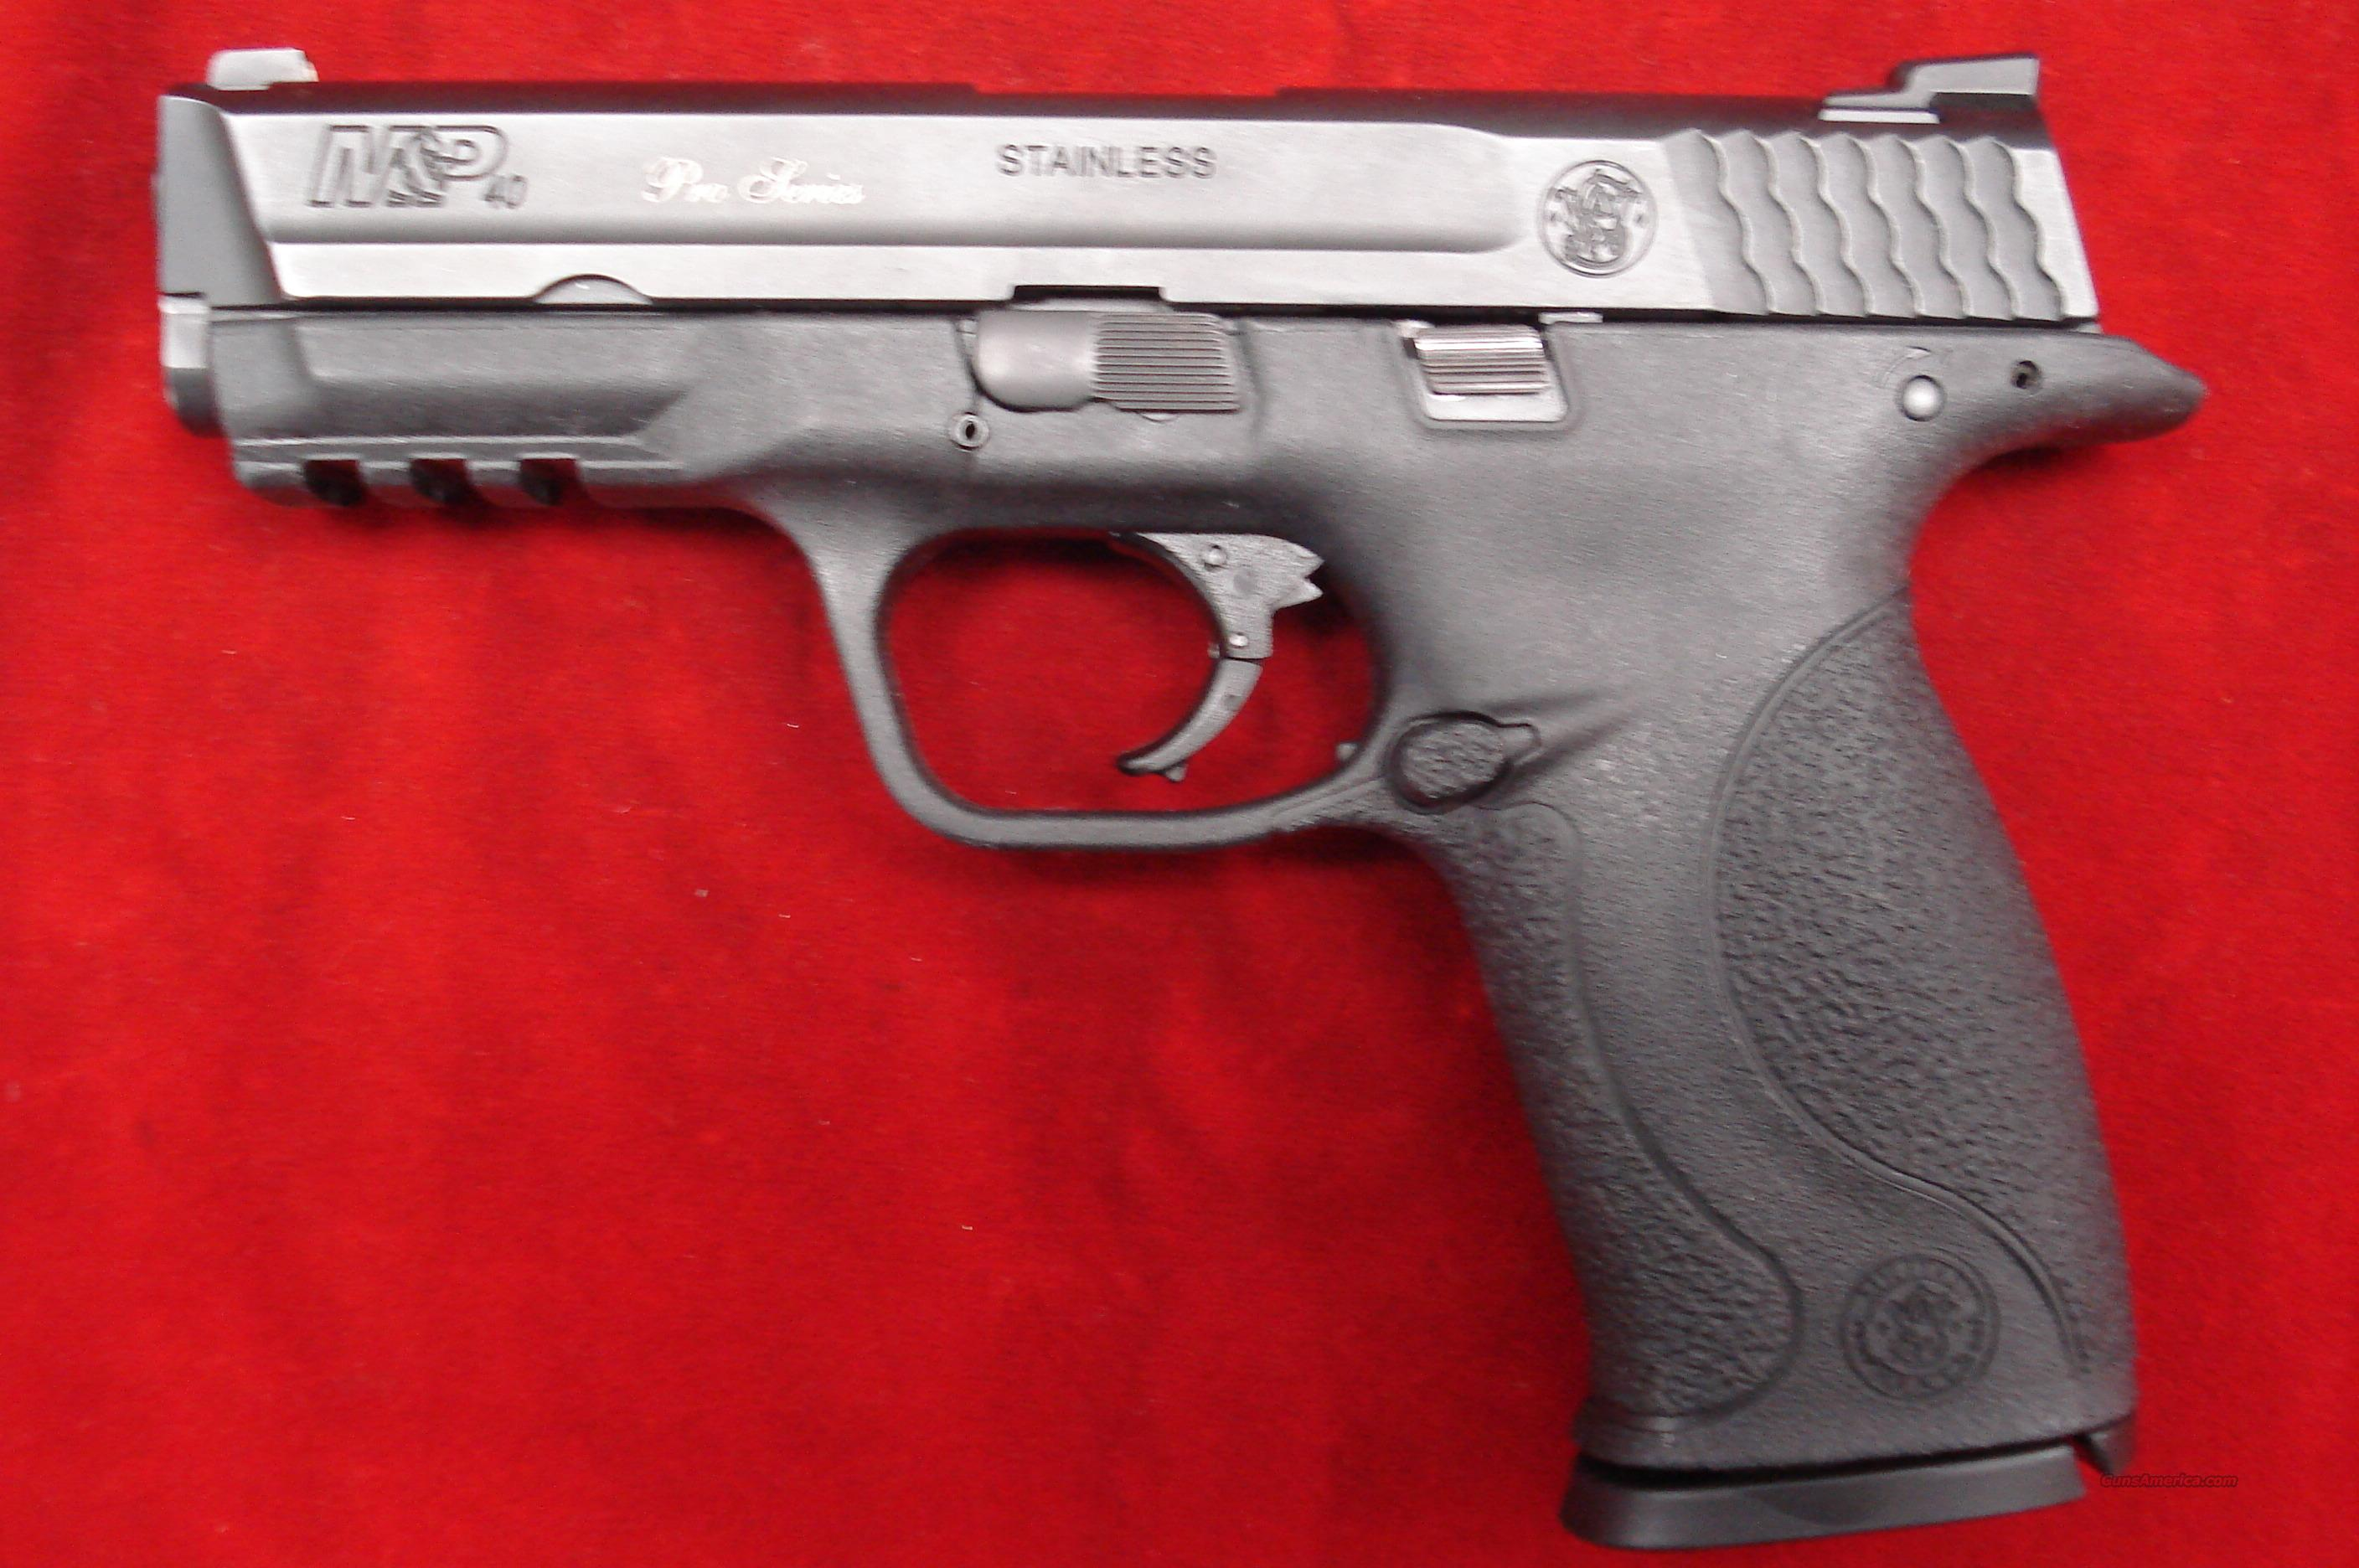 SMITH AND WESSON M&P PRO SERIES .40CAL HIGH/CAP WITH NIGHT SIGHTS USED GOOD CONDITION  Guns > Pistols > Smith & Wesson Pistols - Autos > Alloy Frame